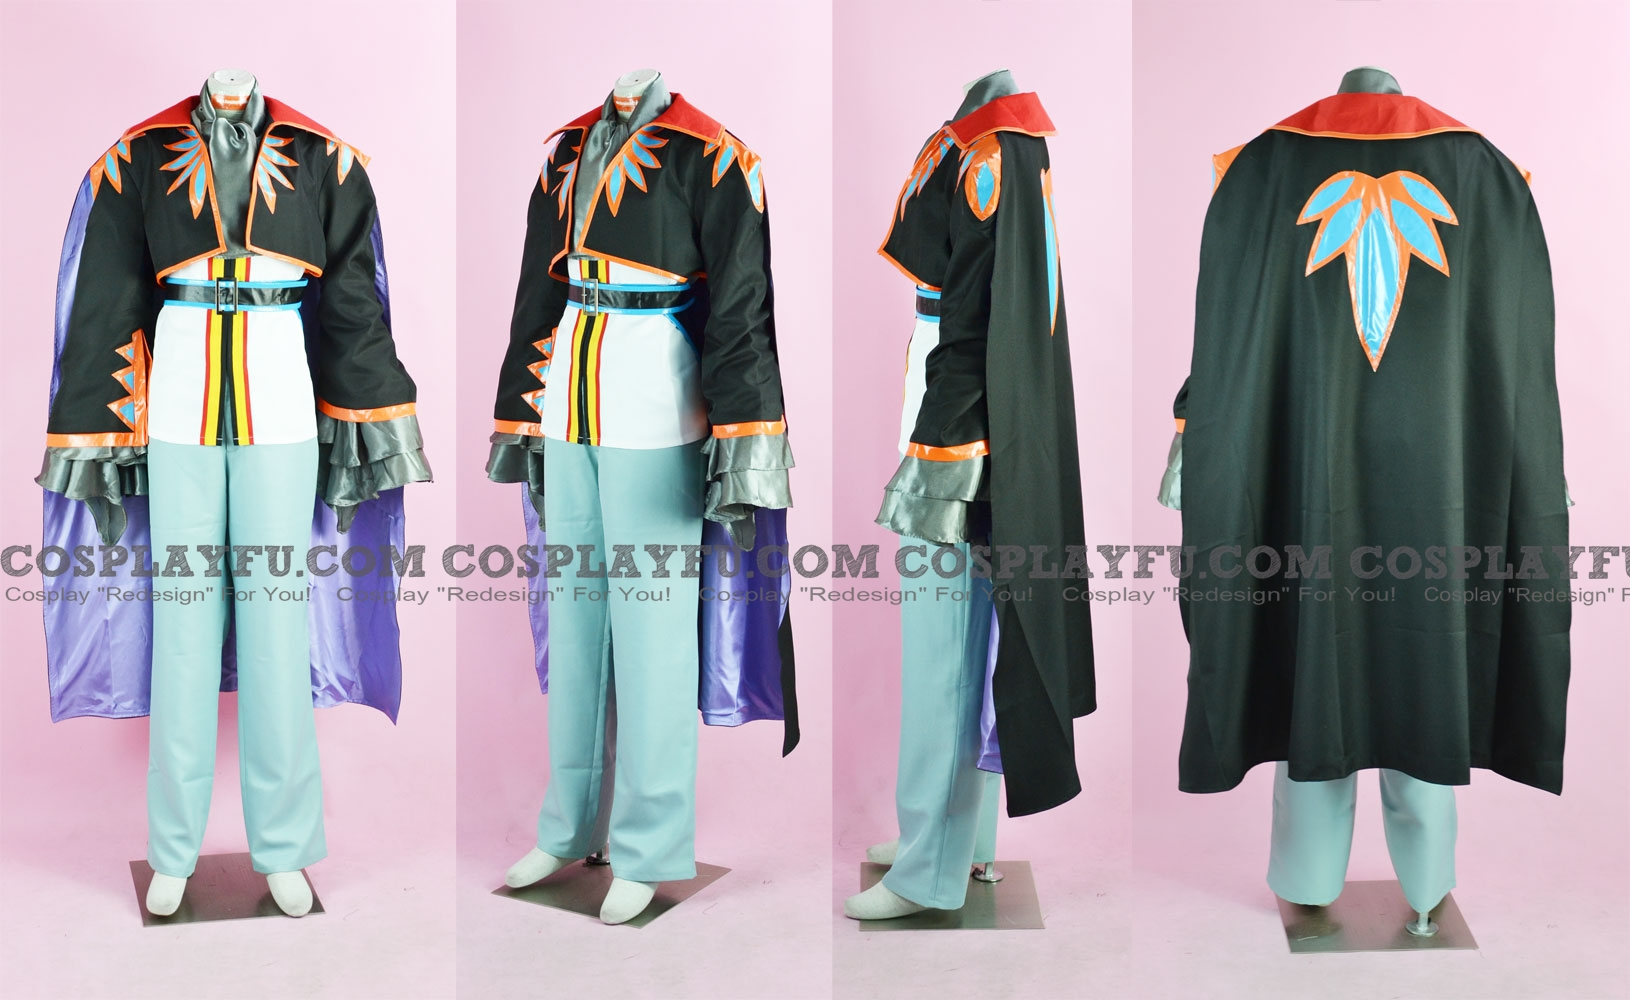 Richard Cosplay Costume from Tales of Graces